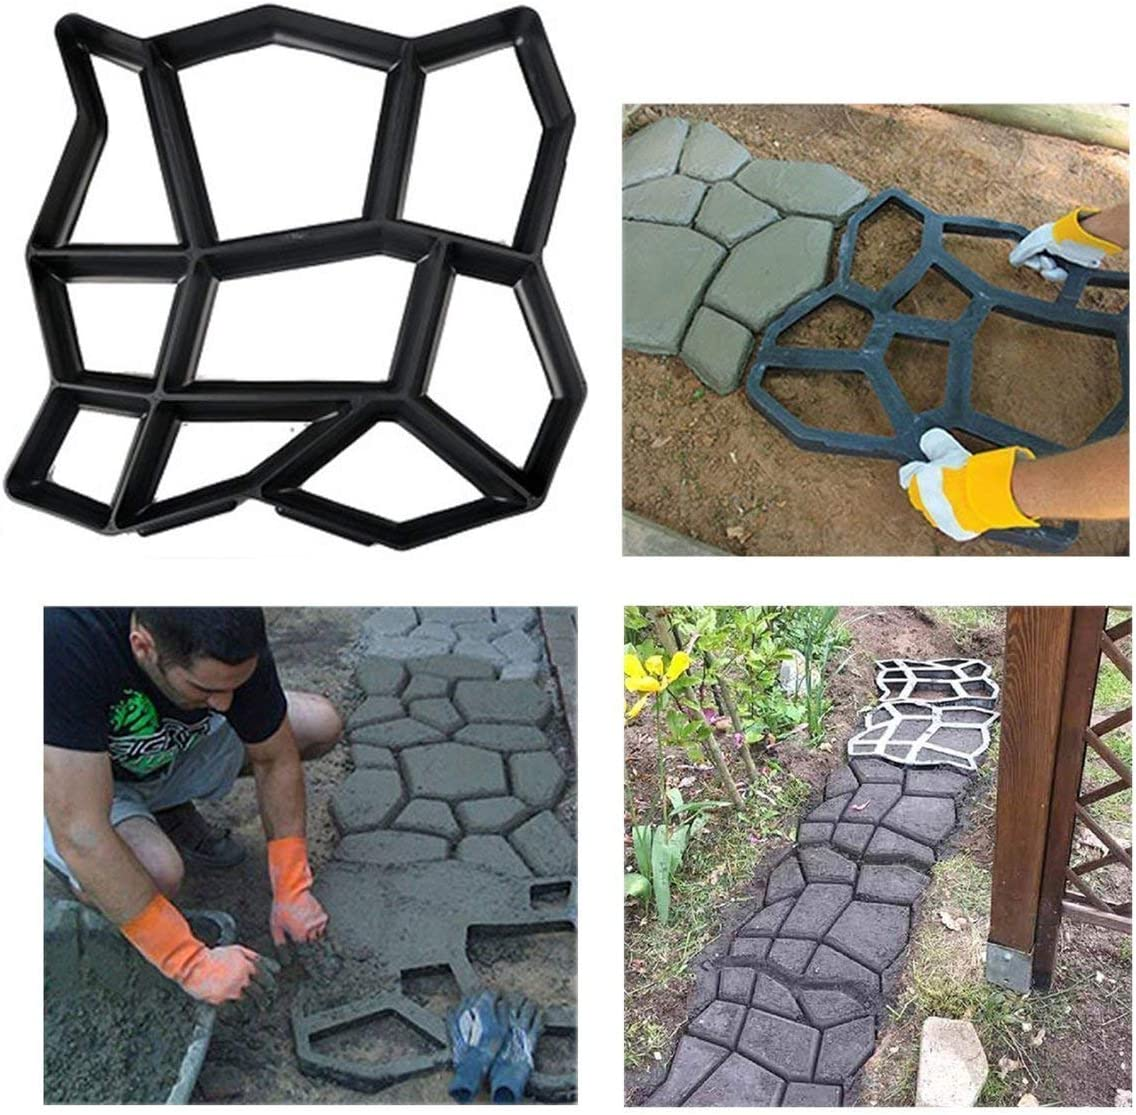 Stageya Path Make Paving Model Reusable Patio Concrete Paving Garden Path Molds,16.5X 16.9